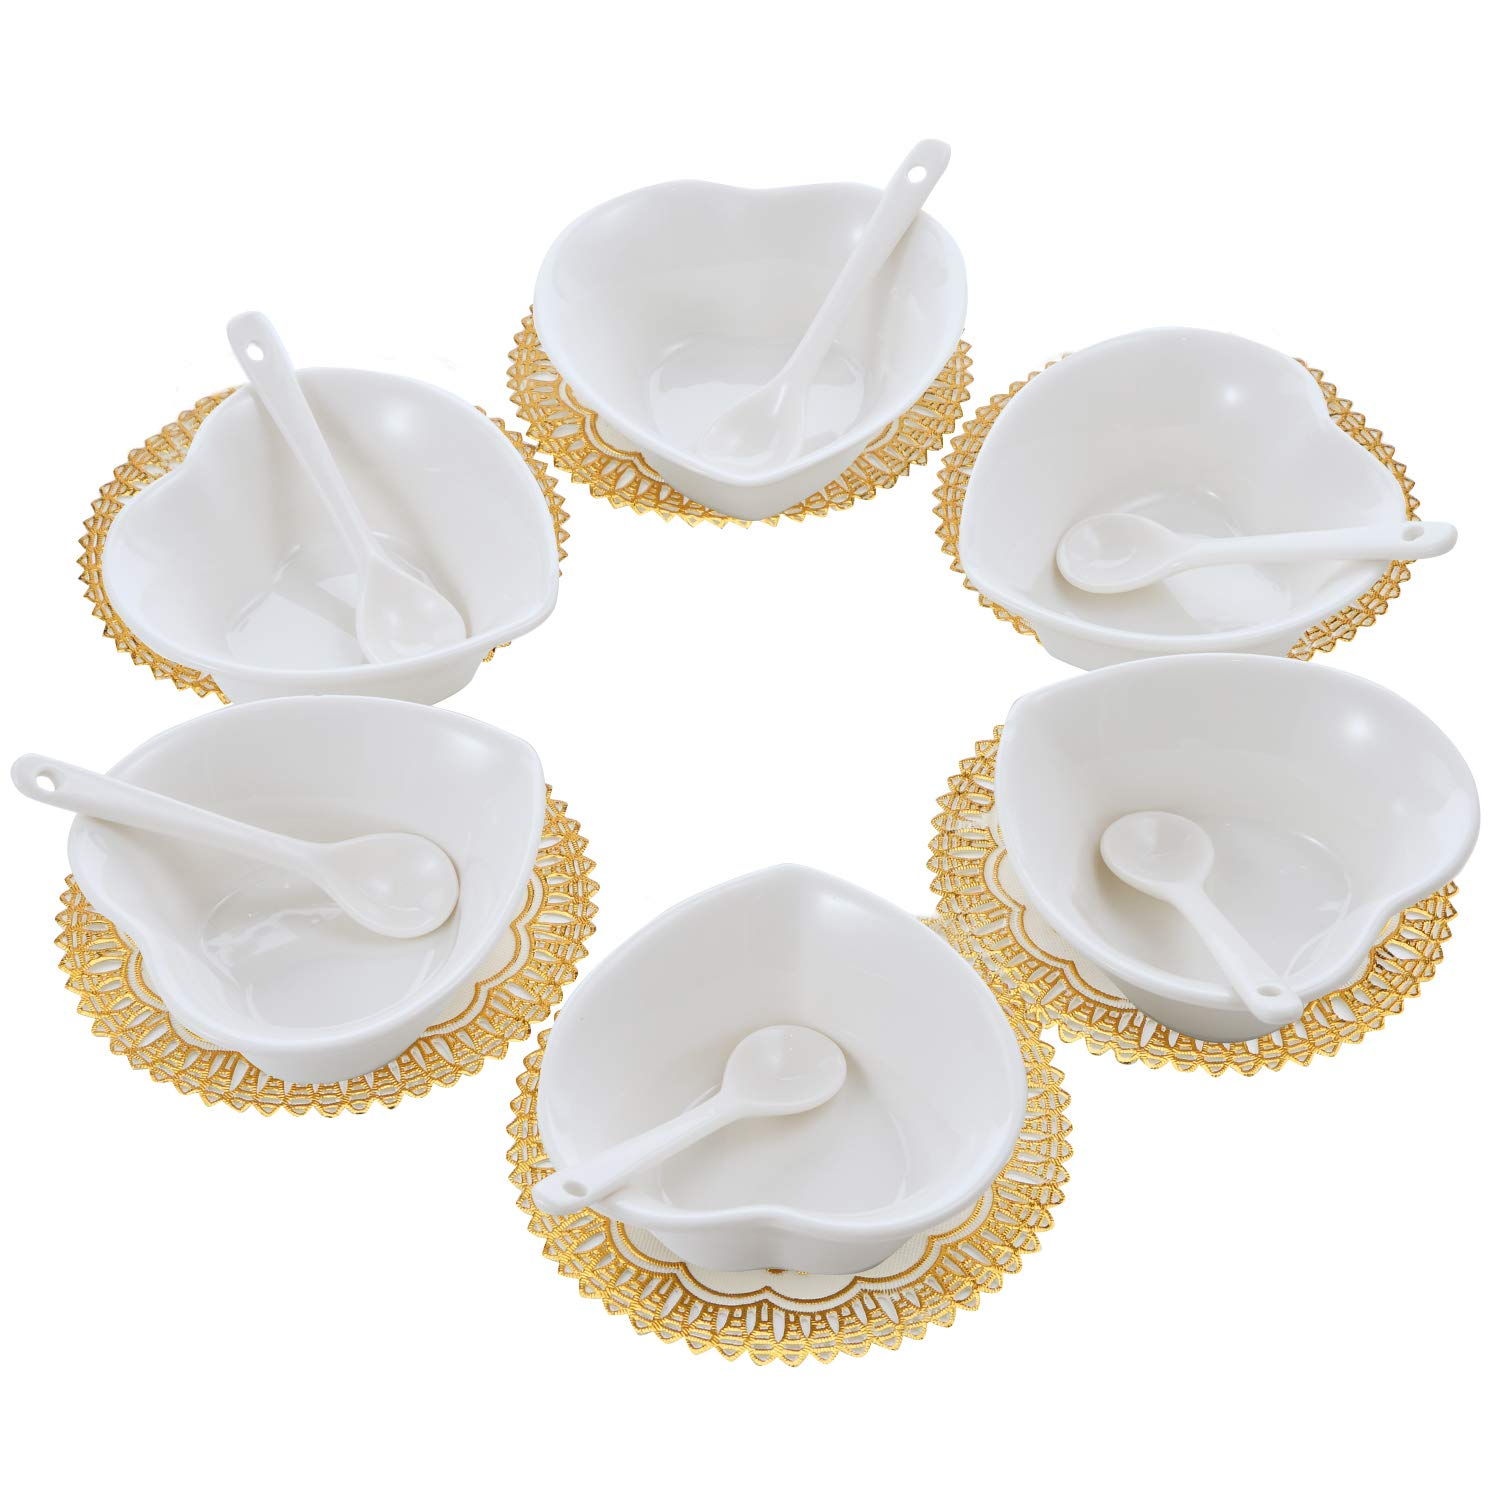 6PCS Small Porcelain Ramekins Condiment Dishes with Spoons, Ceramic Dipping Cups, Snack Appetizer Serving Tray, Sauce Dish Plate, Dessert and Ice Cream Bowls, White Heart with 6pcs Dish Holders by handrong